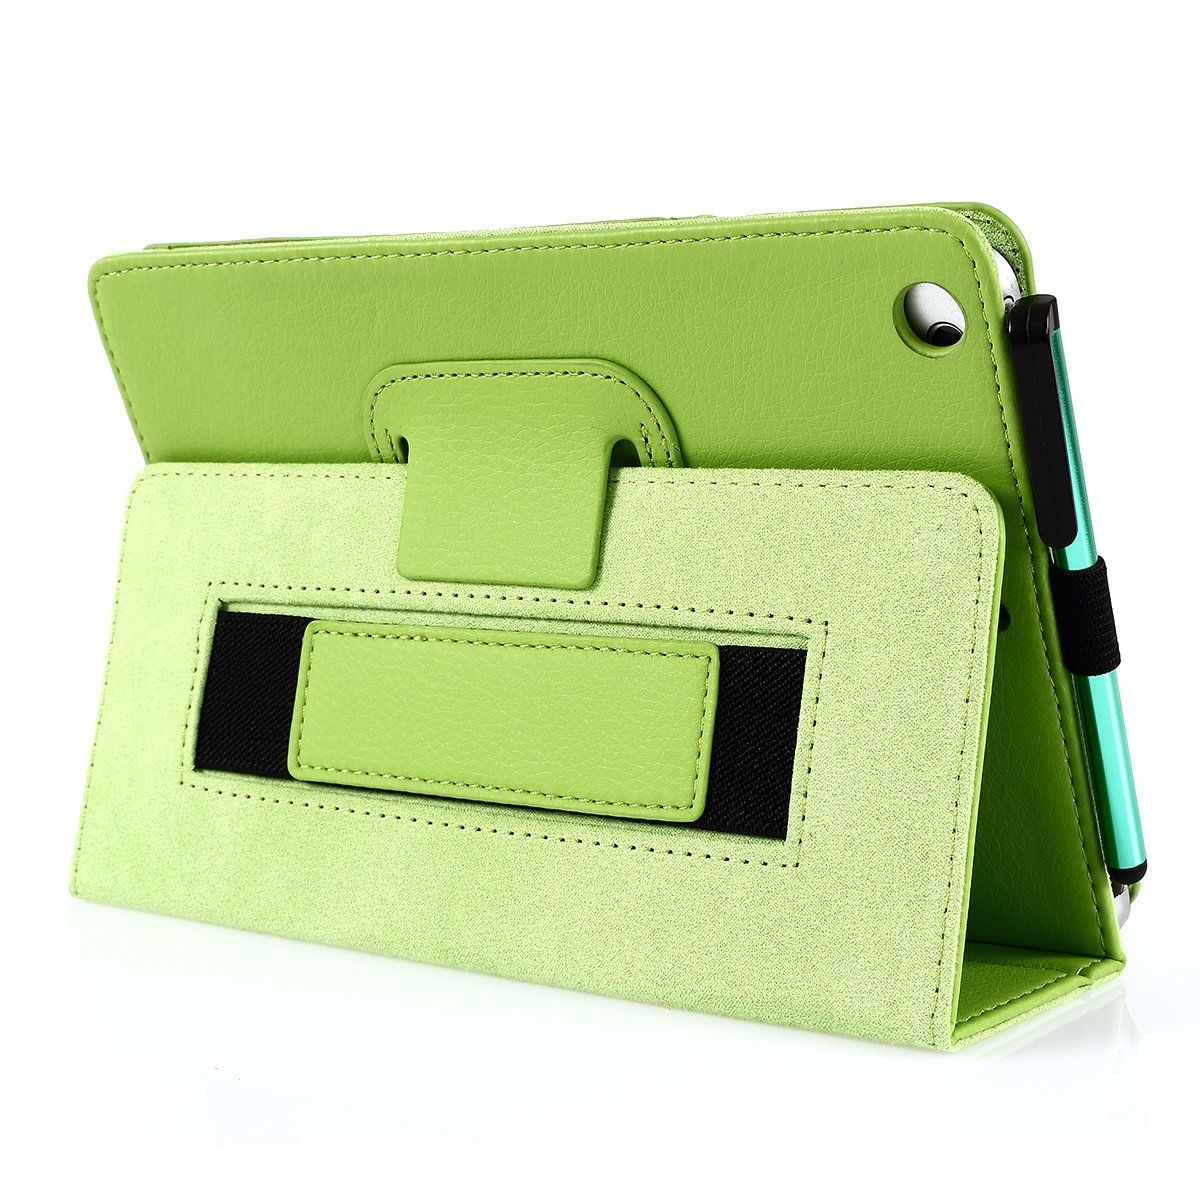 For iPad 2/3/4/5/Mini 2/3 Case Smart Cover With Card Slots ...